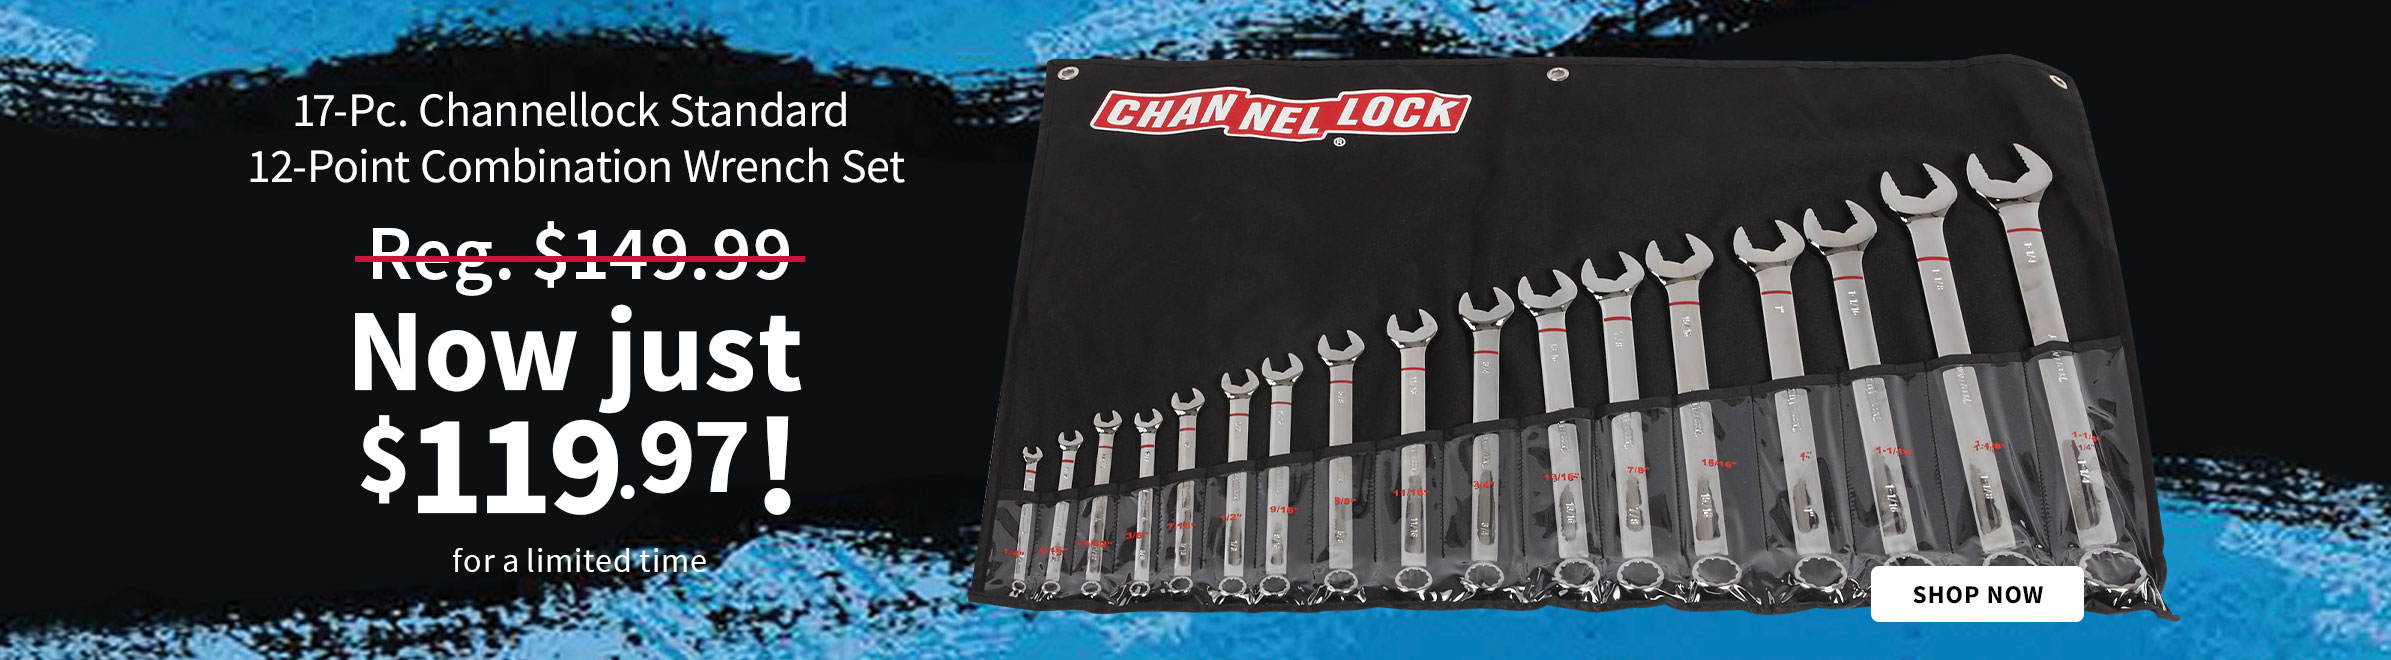 Channellock 17-Pc. Standard Wrench Set